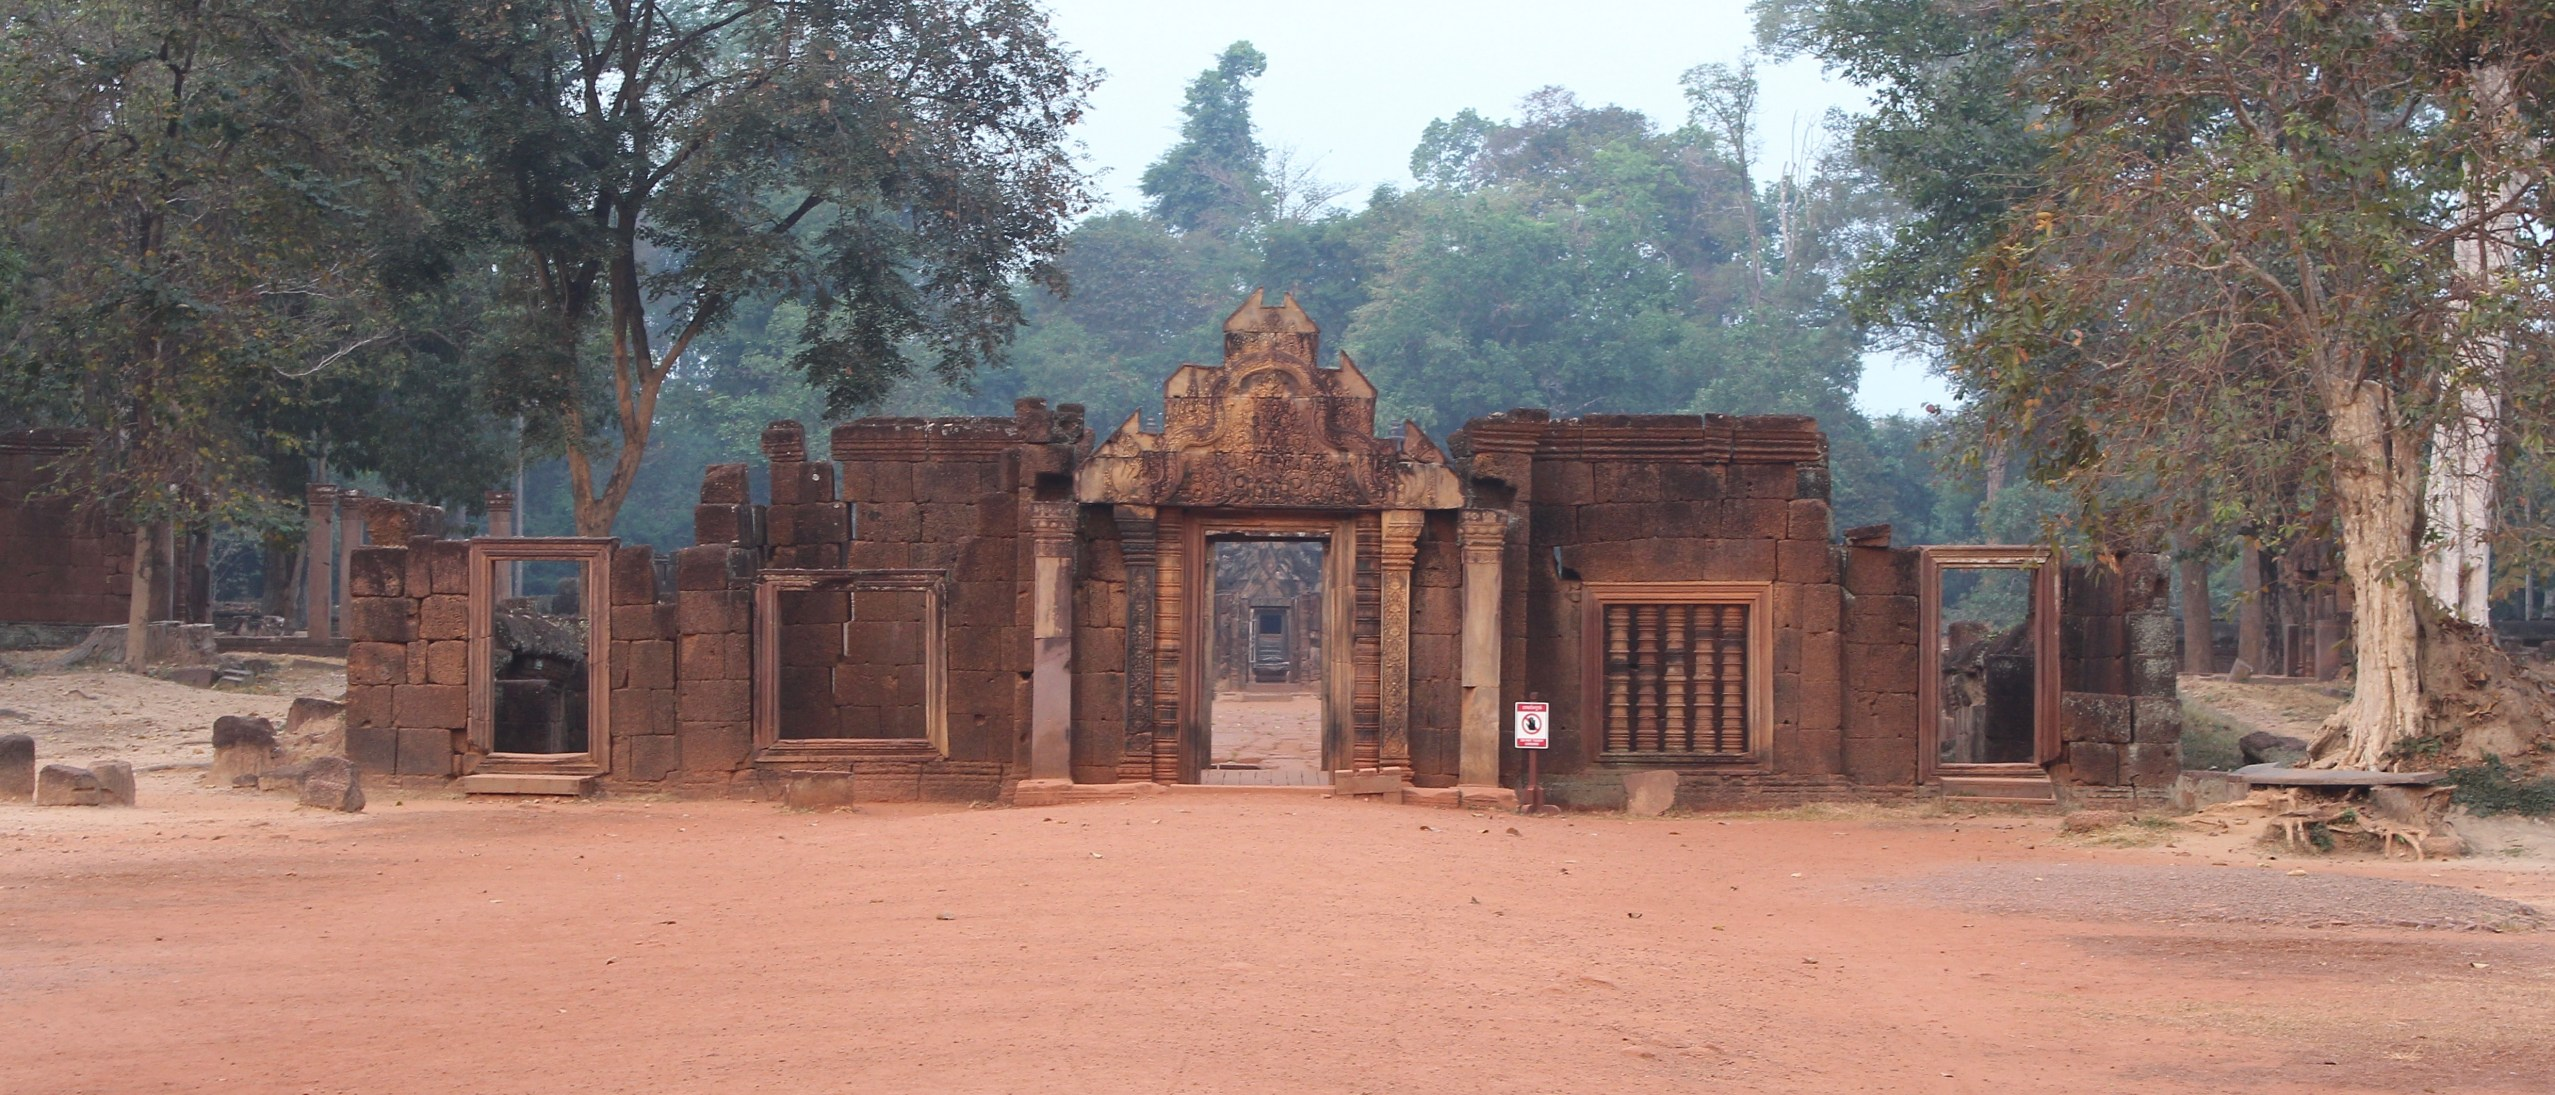 Façade of laterite temple gateway catching first light